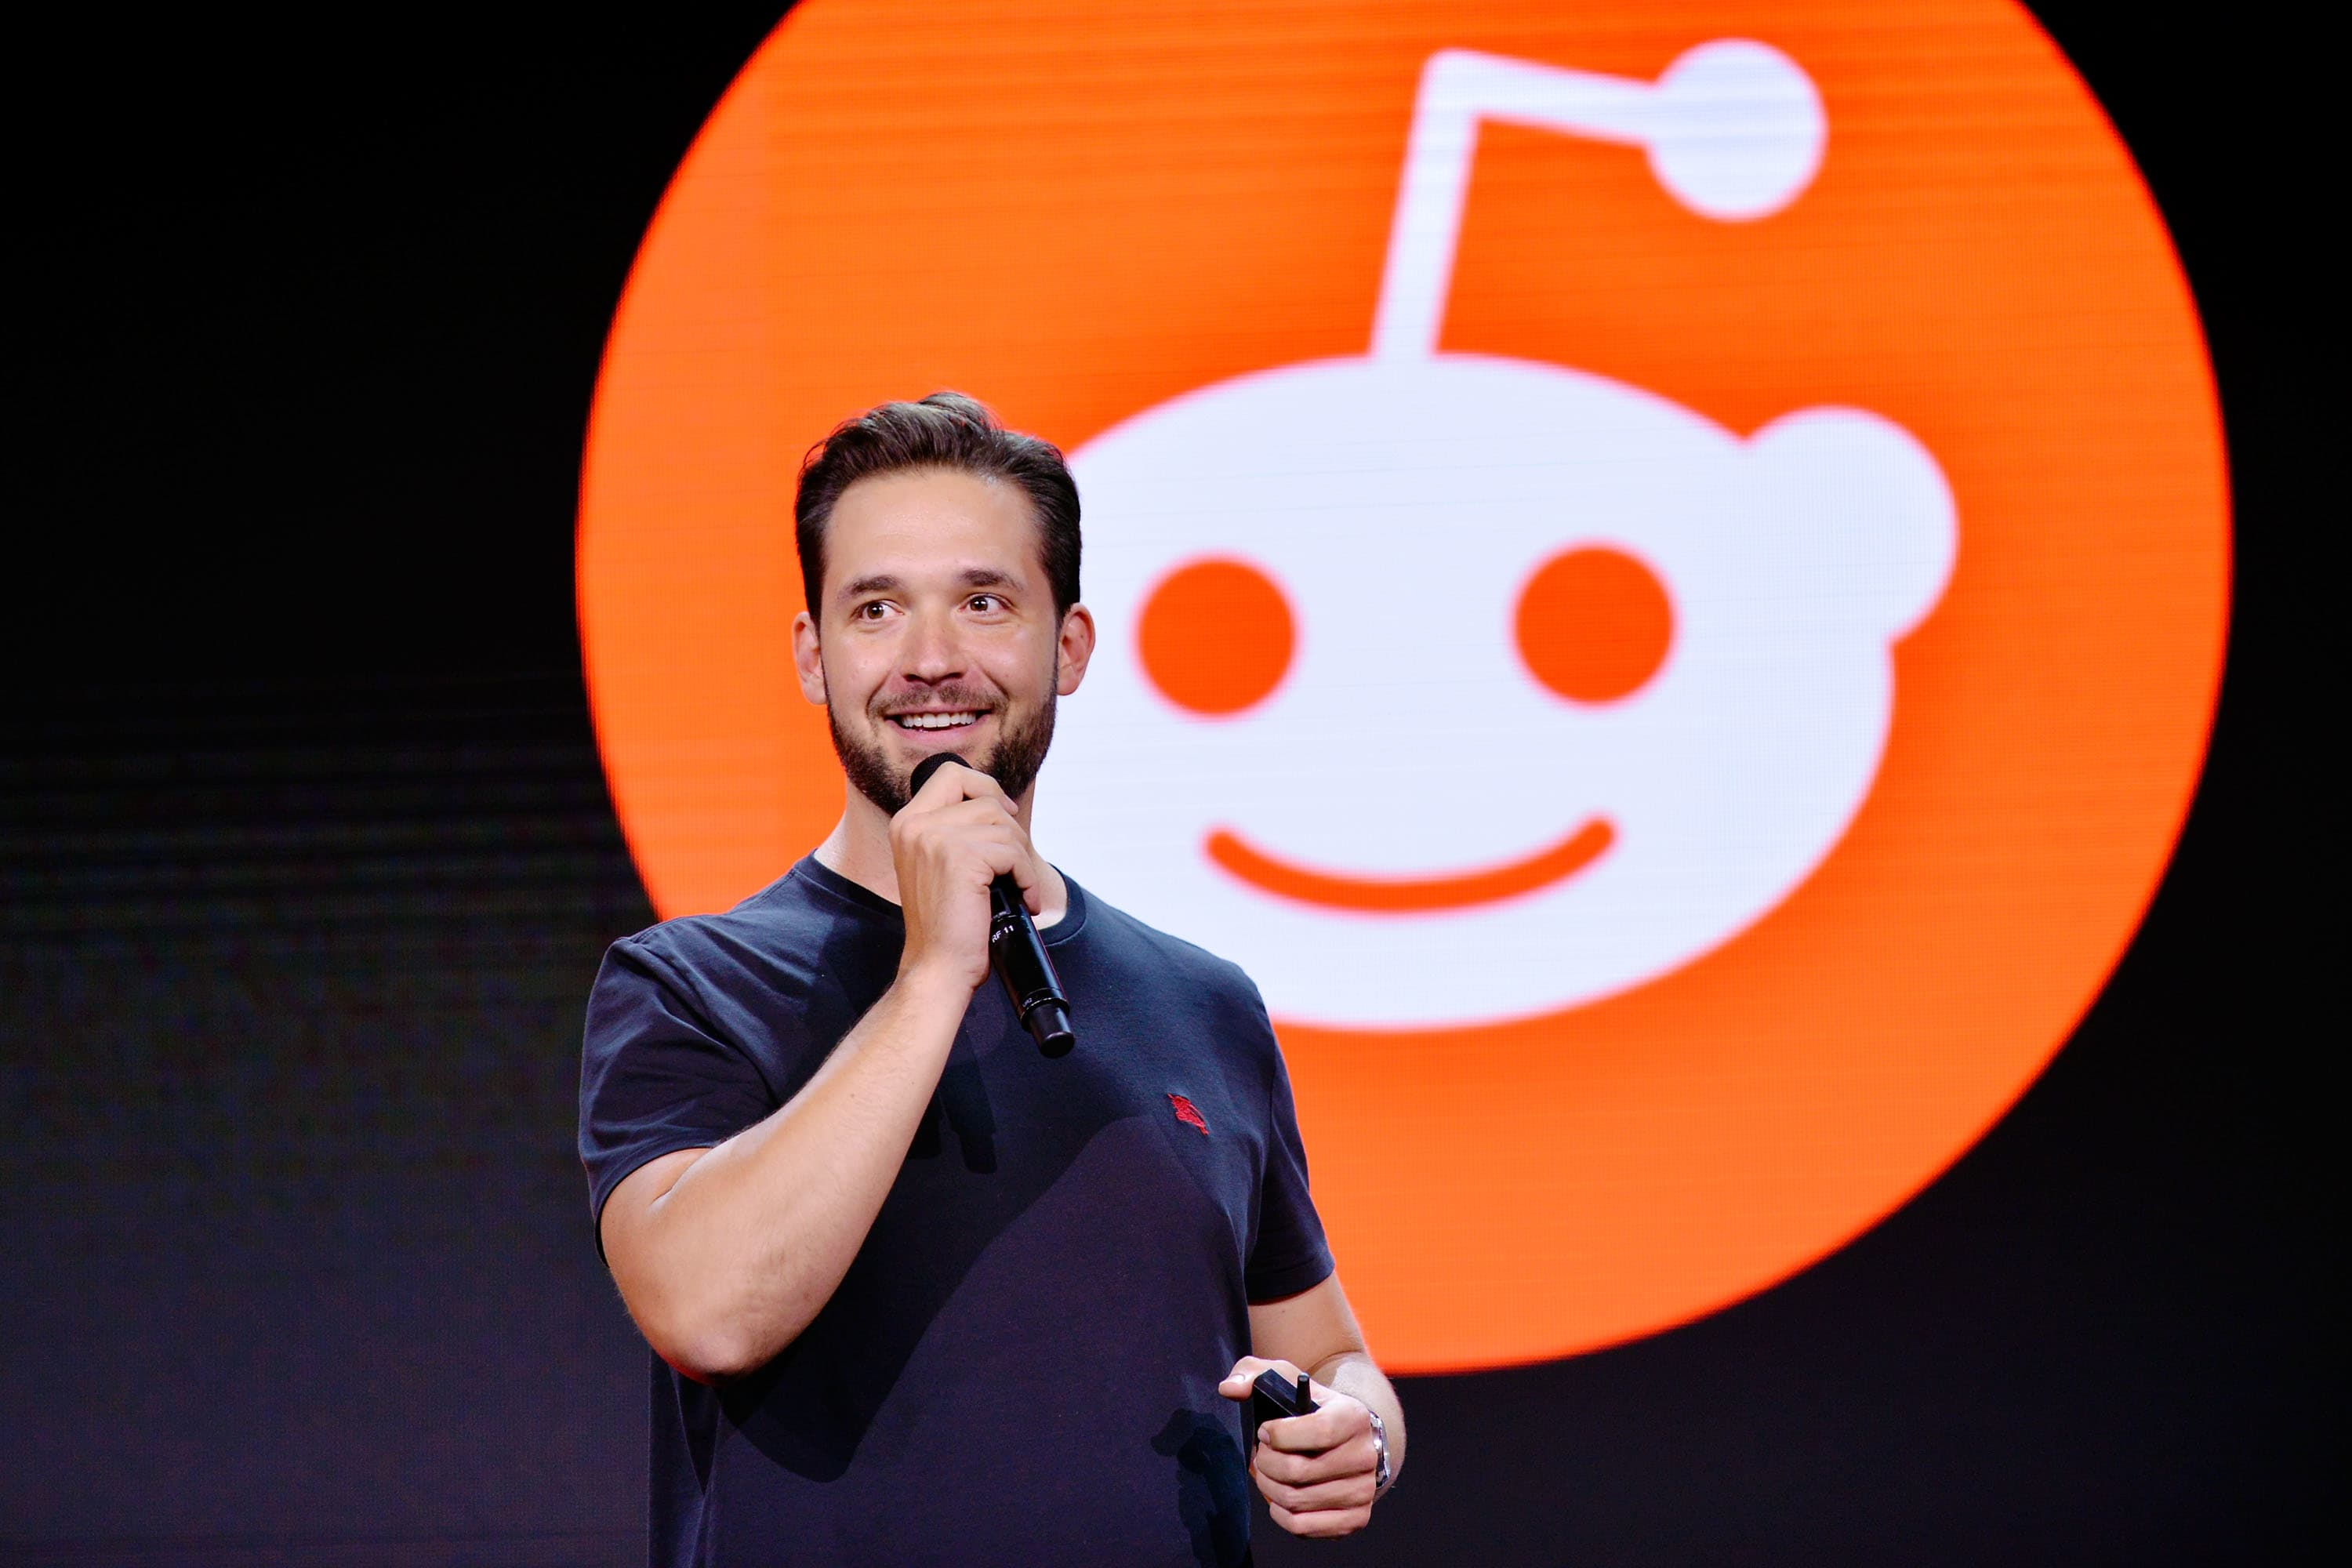 Reddit — one of the world's most popular websites — is trying to cash in through advertising